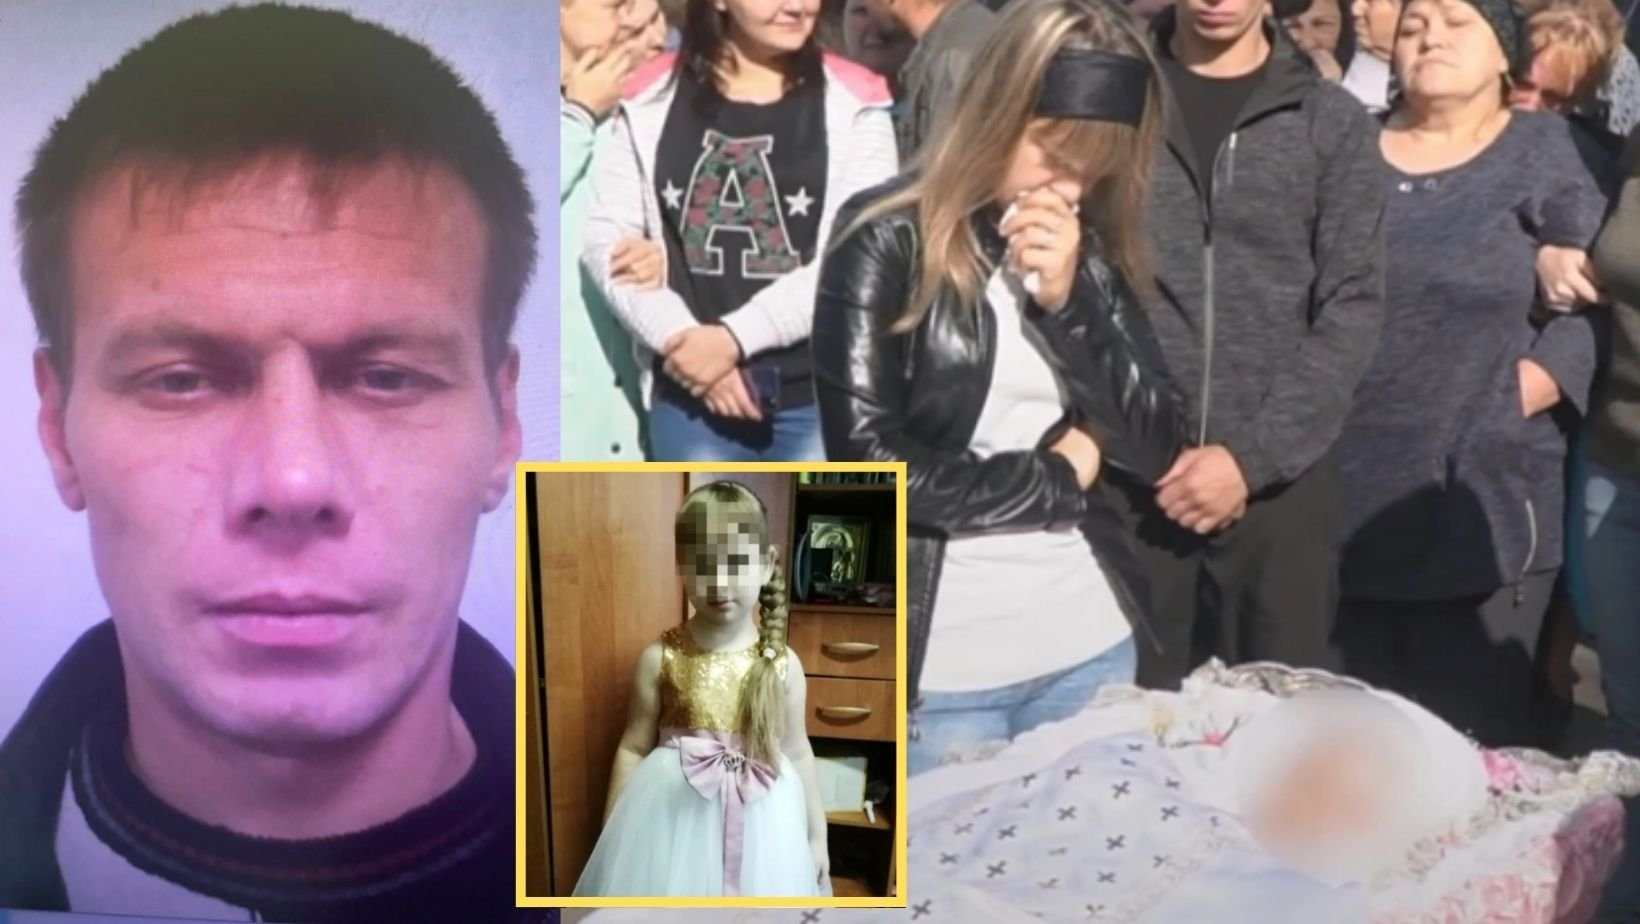 1 74.jpg?resize=1200,630 - Man R*ped & Killed His Ex-GF's 9-Y.O Daughter As A Revenge For Breaking Up With Him